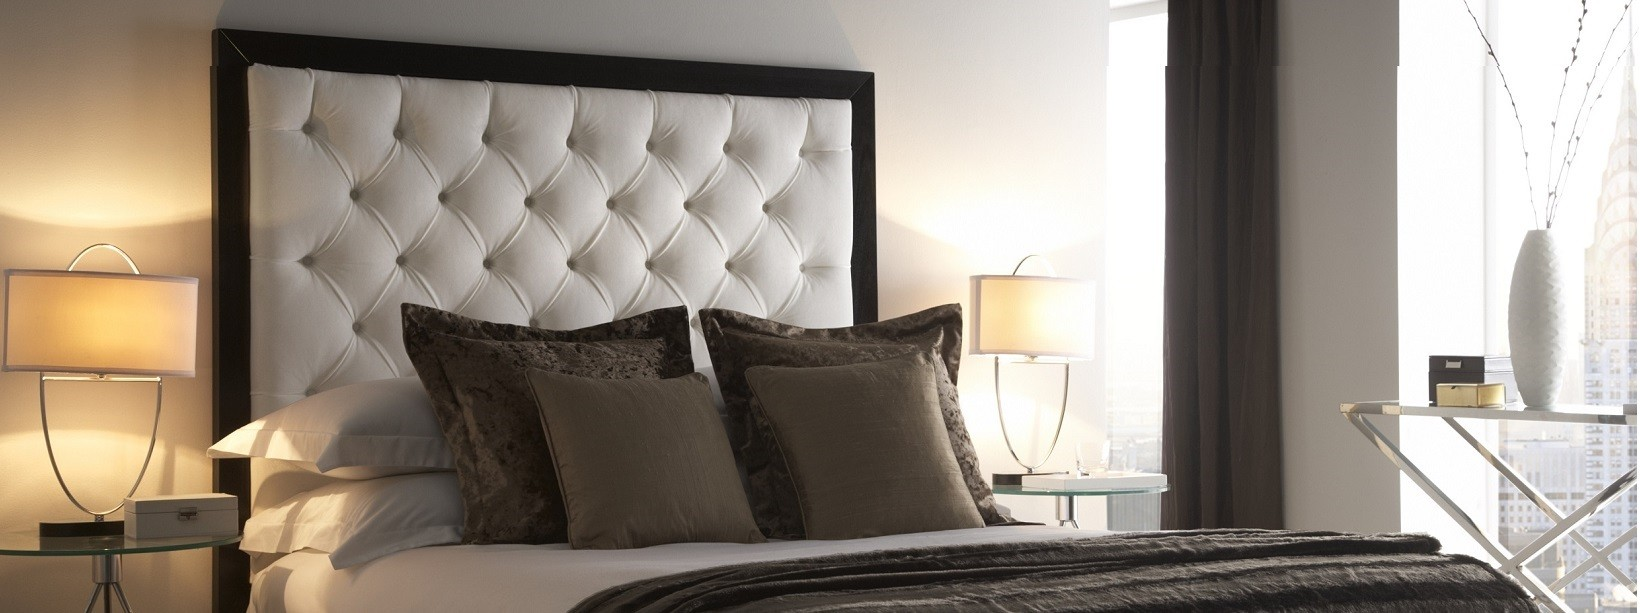 LUXURY BEDS U0026 HEADBOARDS